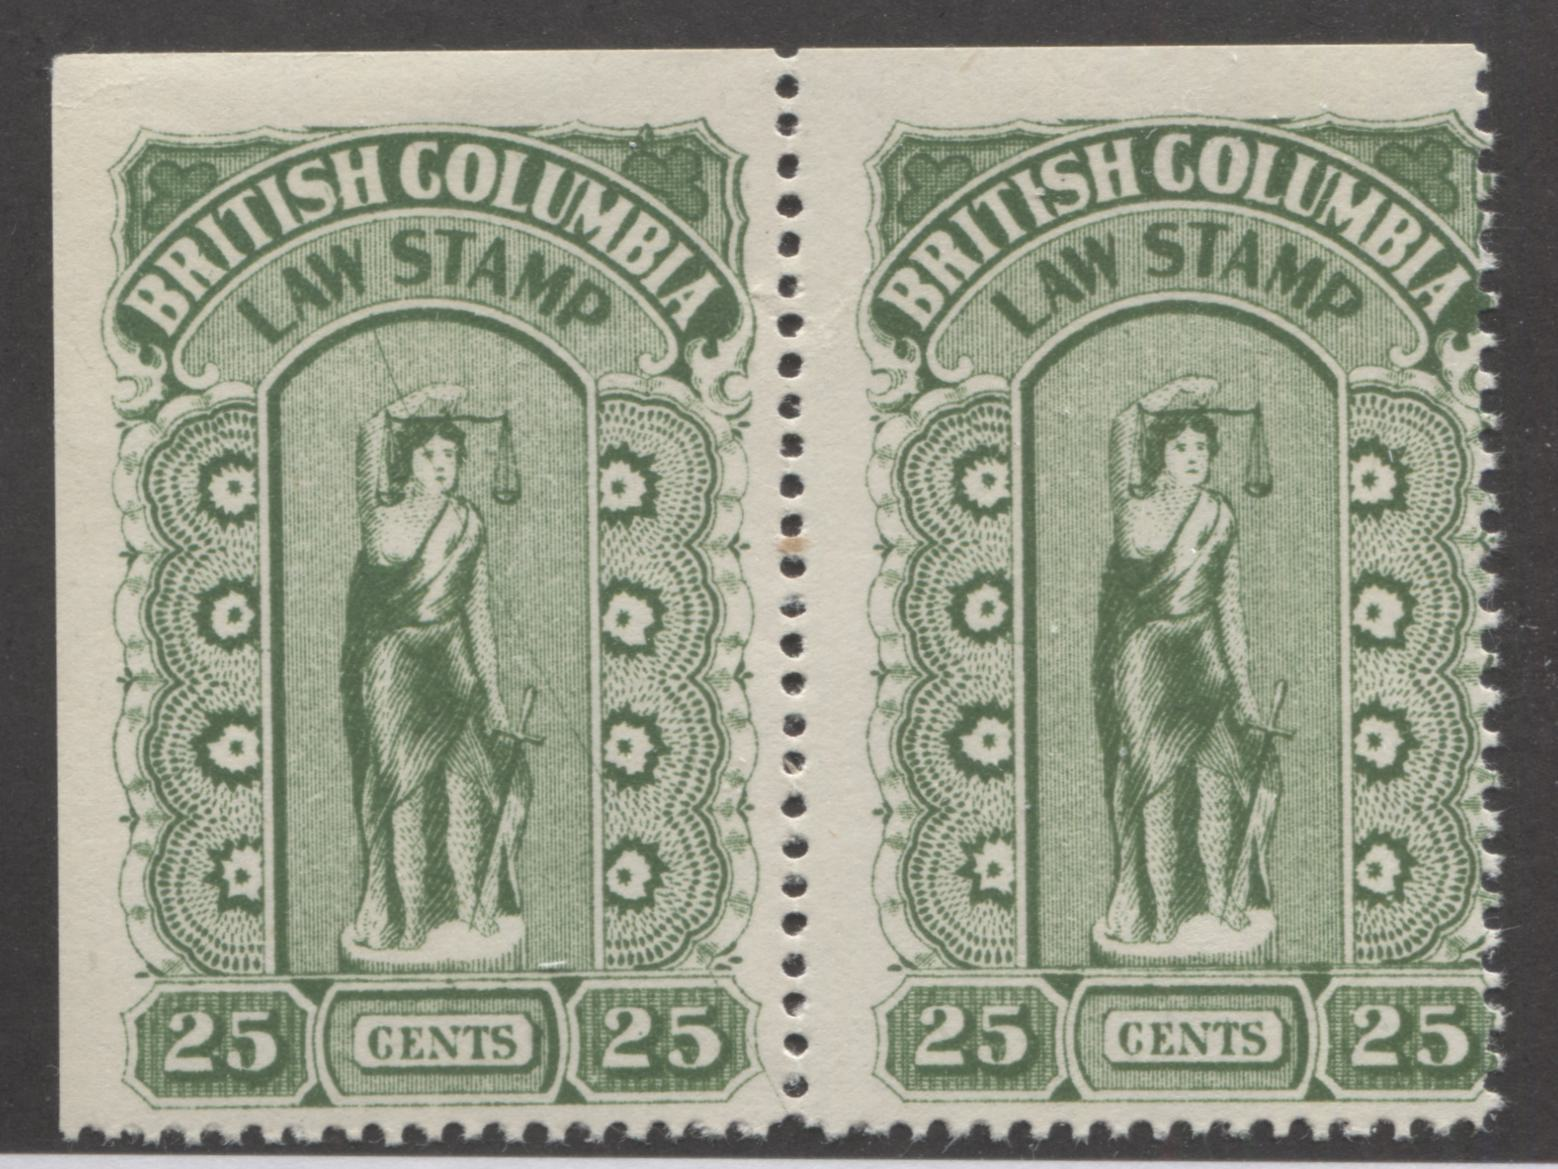 British Columbia #BCL23 25c Green Law Stamp From the 1912-26 Fifth Series, A Fine NH Corner Sheet Pair, Showing Diagonal Line Through Justice on Left Stamp Brixton Chrome